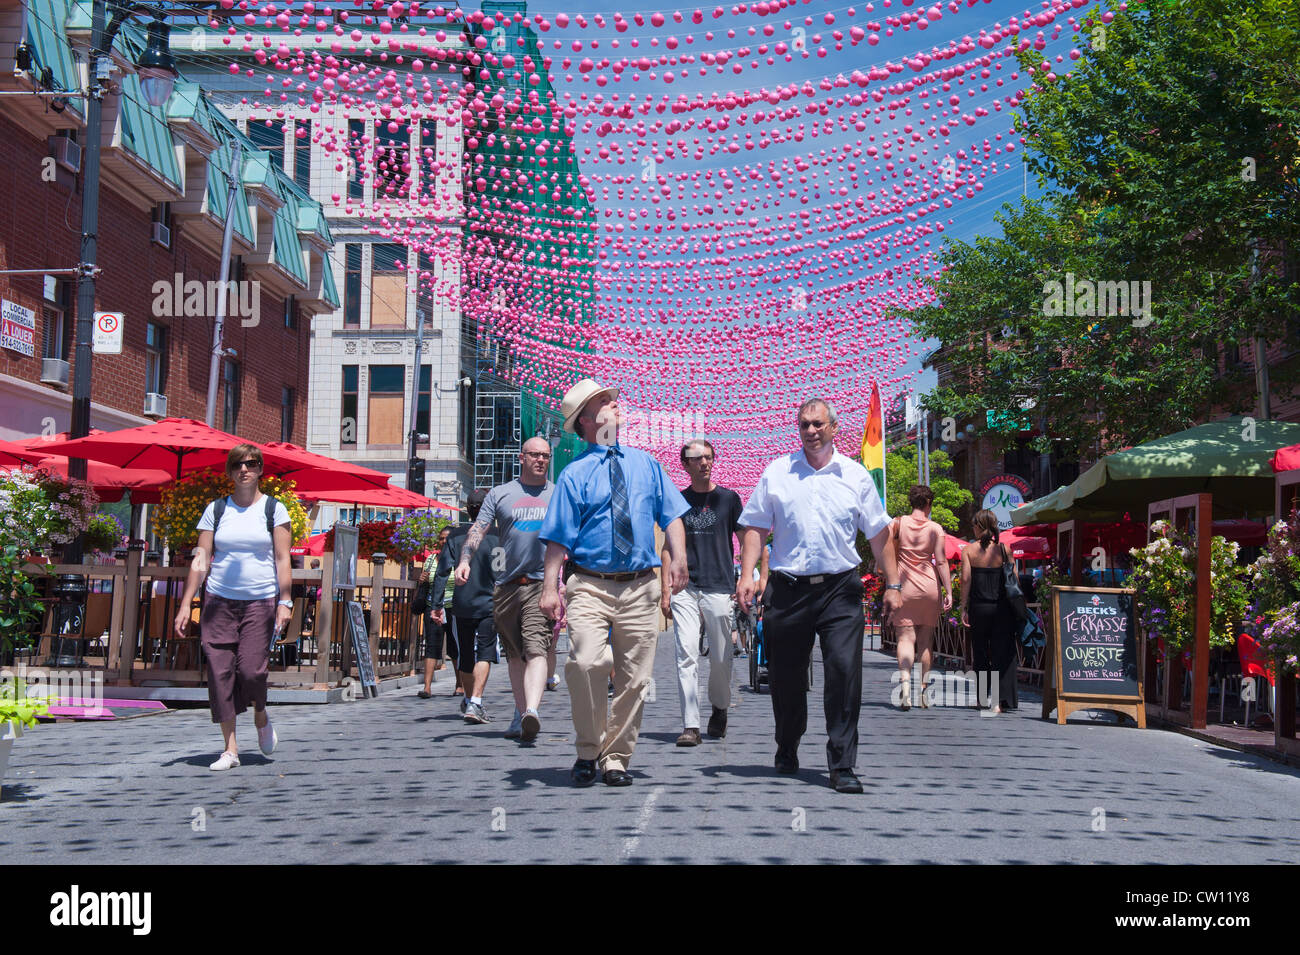 Pedestrians on a part Ste Catherine street which is closed to automobiles during summer months. Gay Village, Montreal. - Stock Image